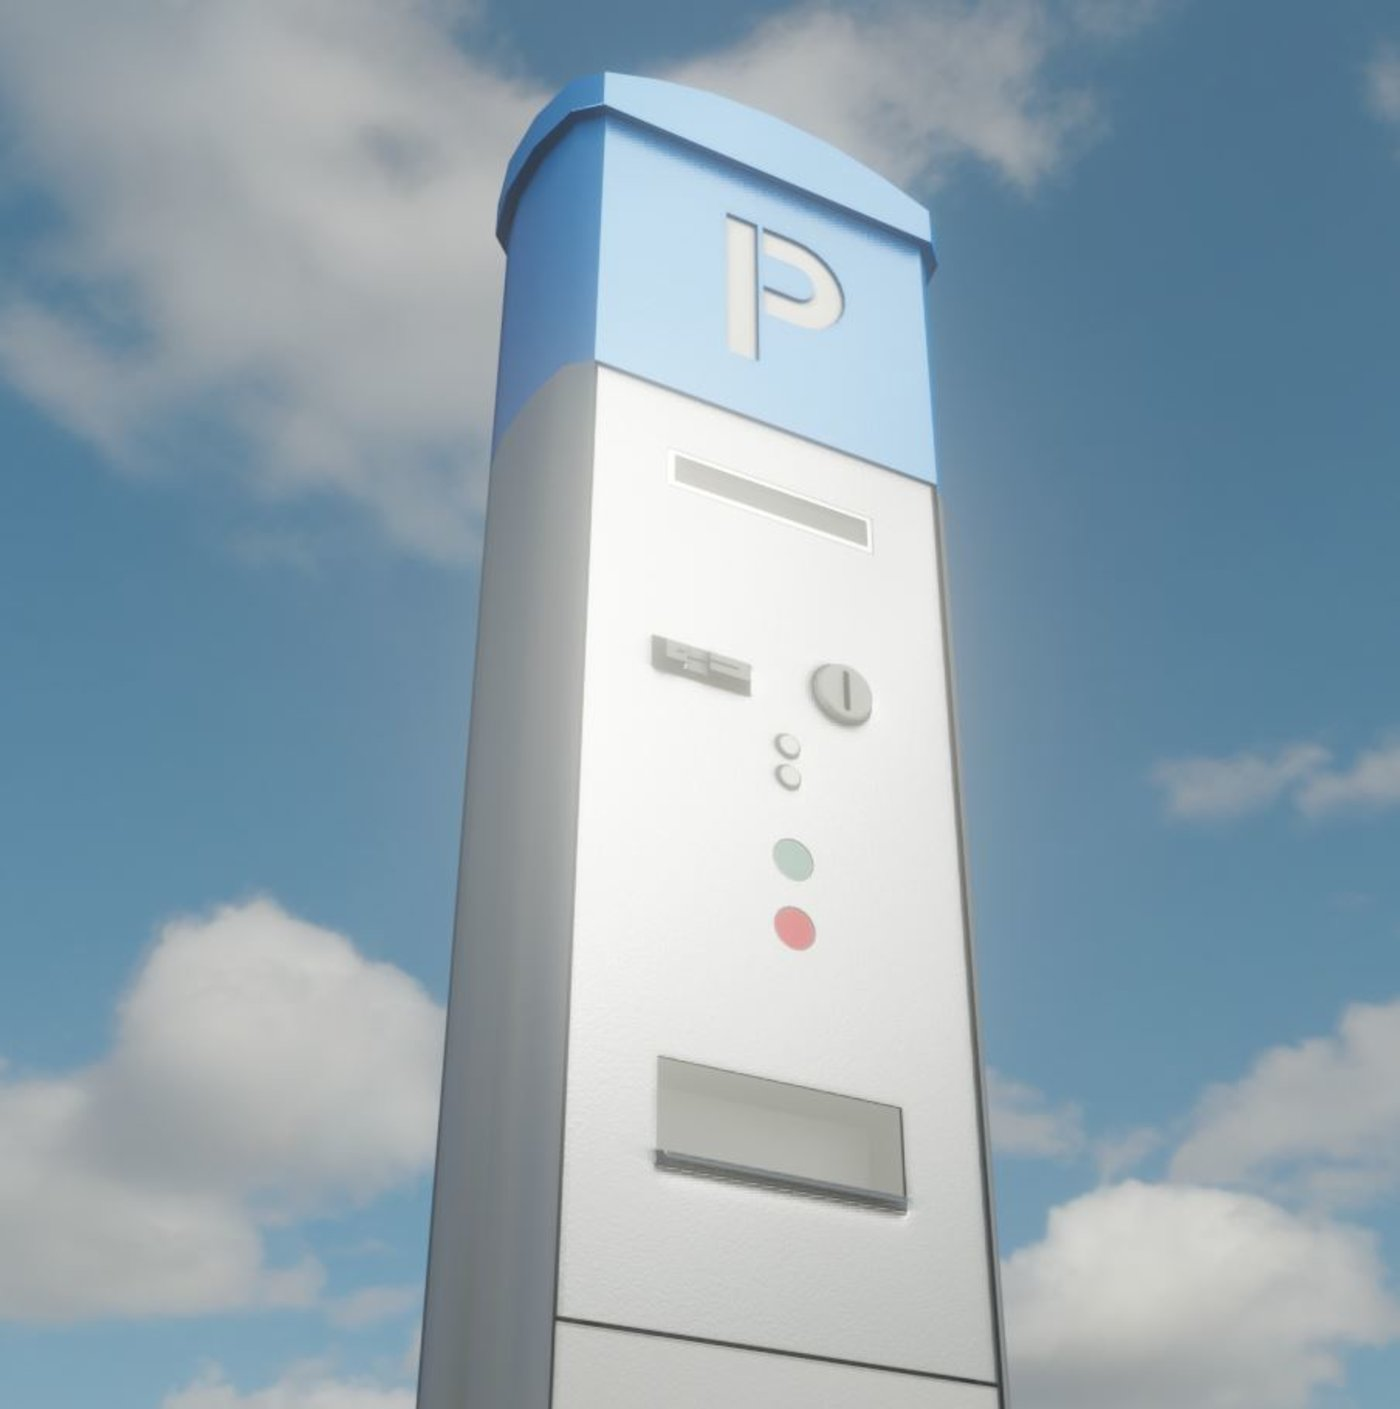 Parking Machine Low-Poly Version